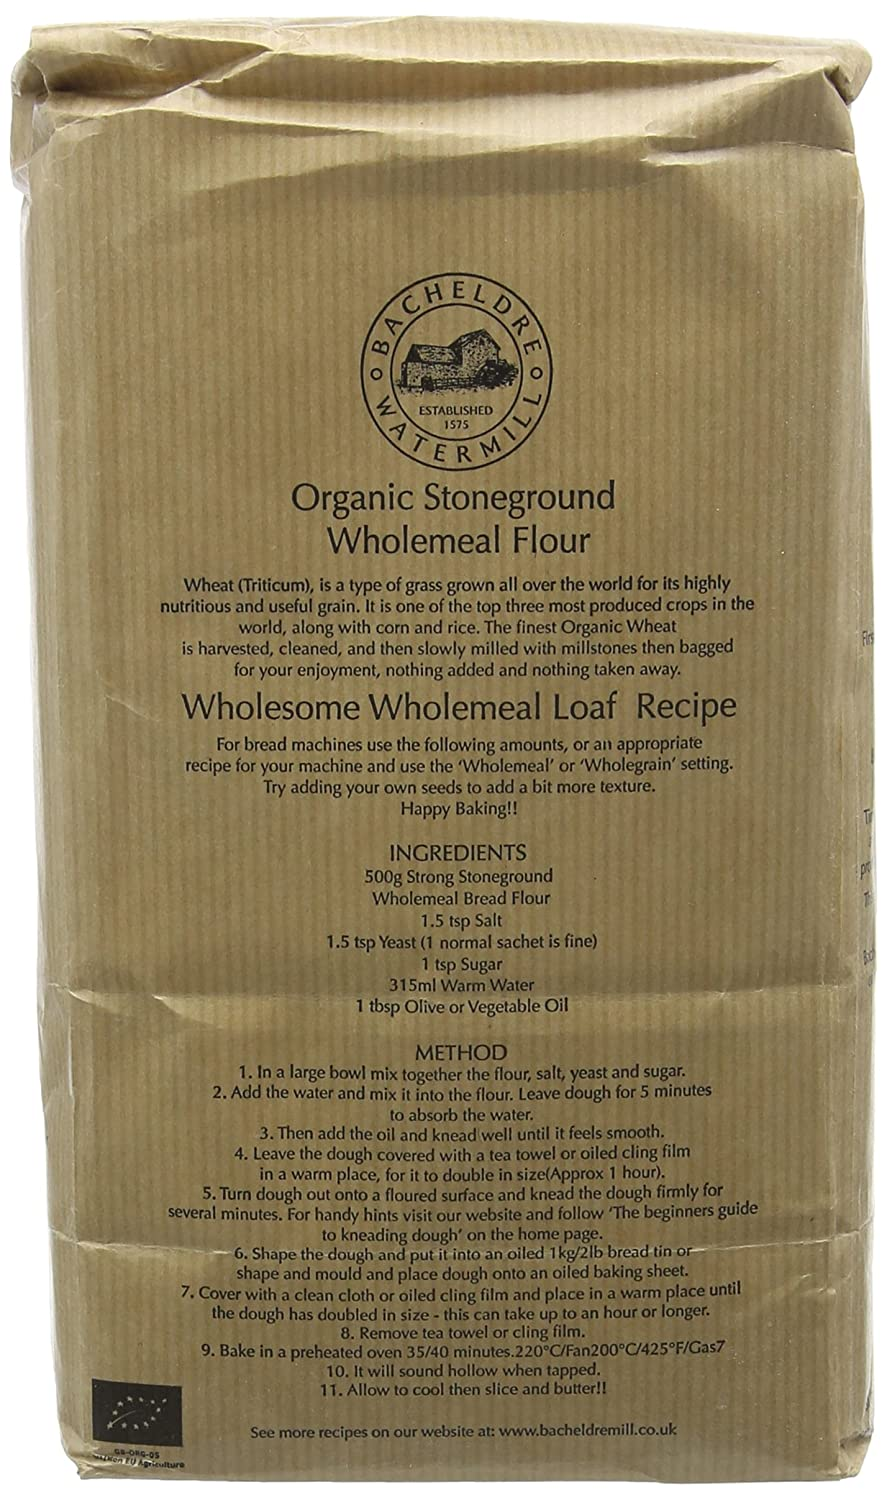 Bacheldre Watermill Organic Stoneground Strong 100 Wholemeal Flour 1 5 Kg Pack Of 4 Amazon Co Uk Grocery